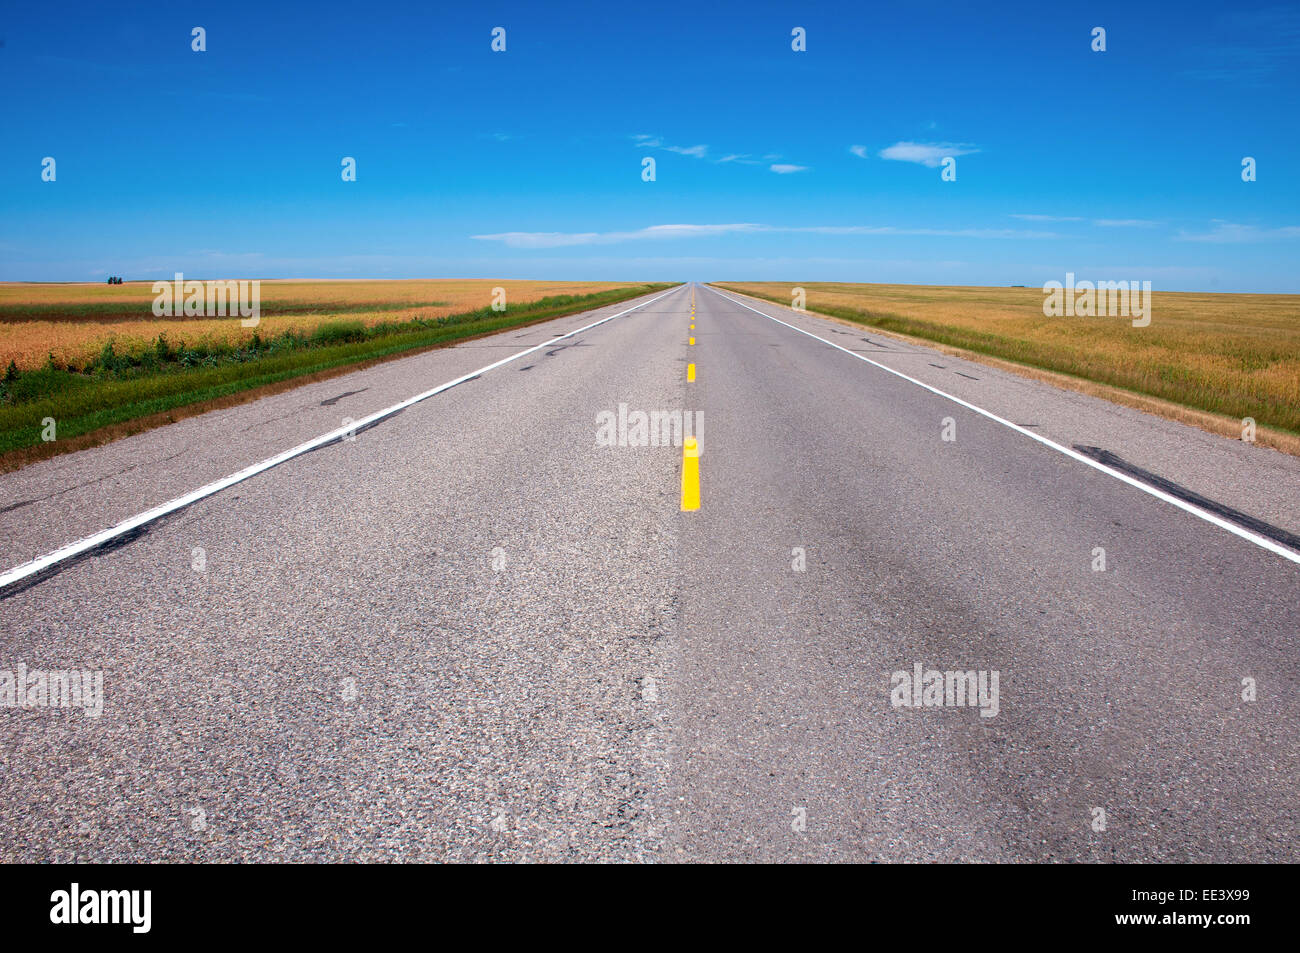 Endless empty road - Stock Image